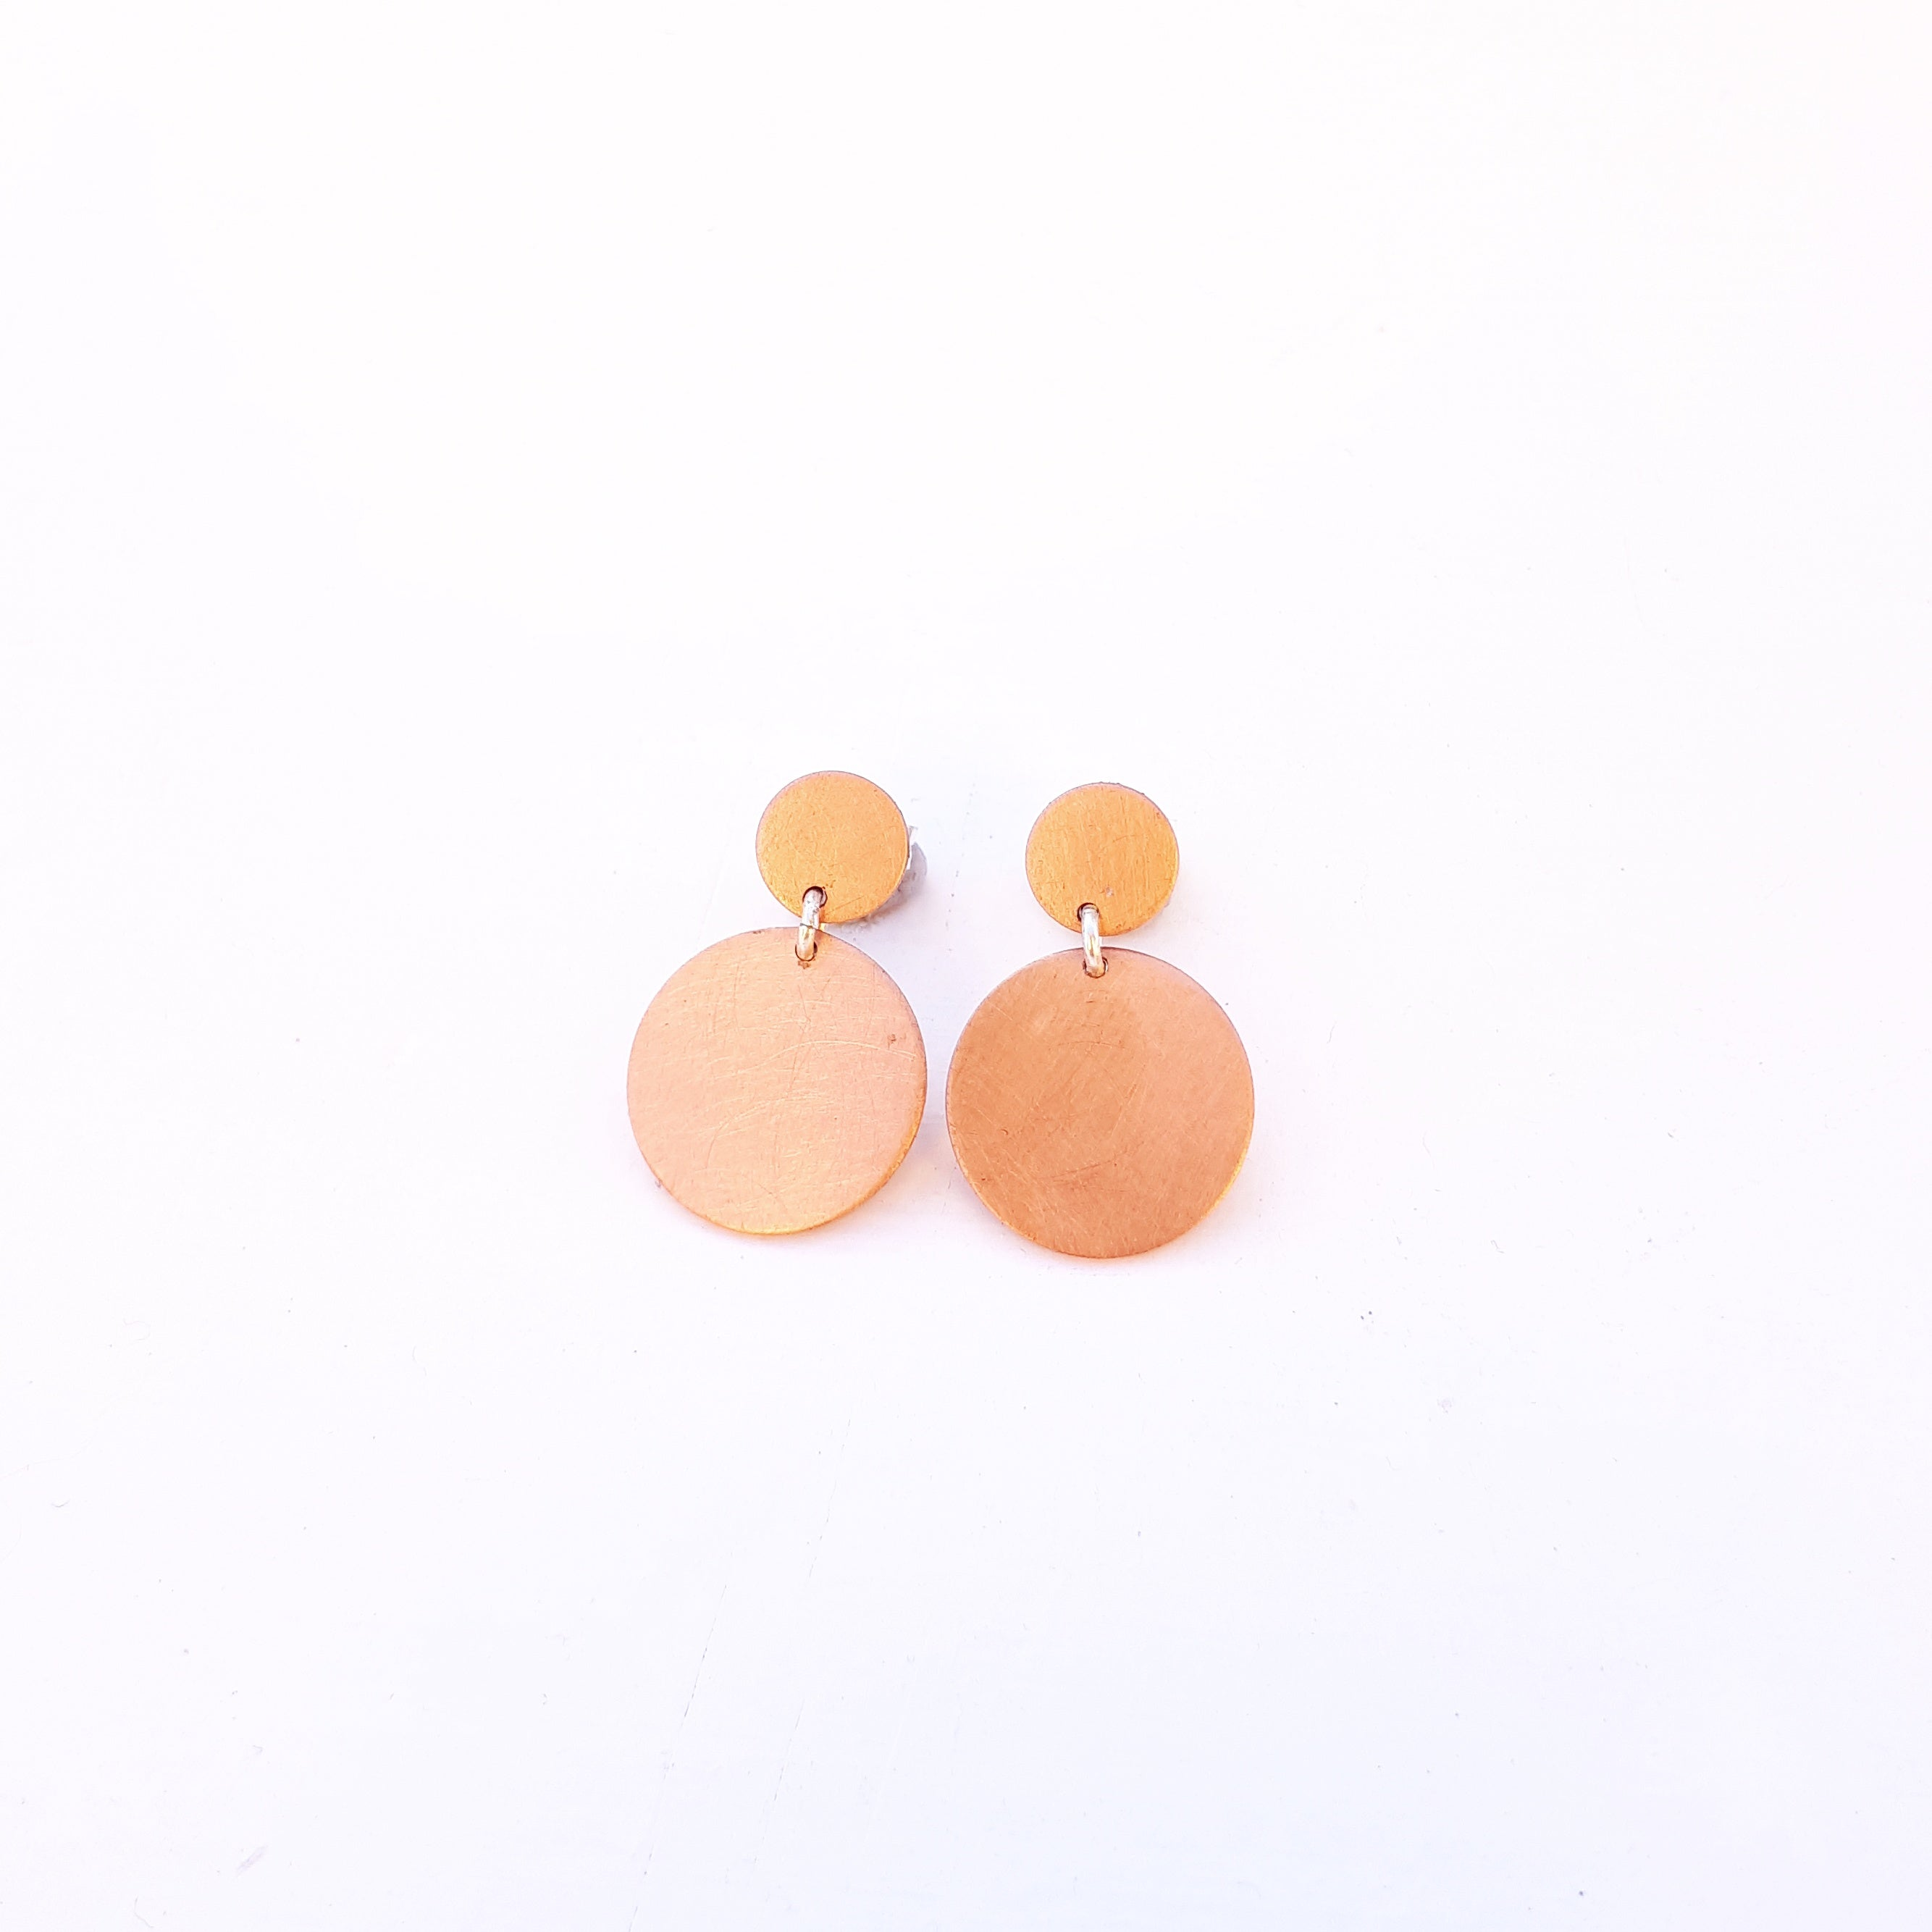 Emily Eliza Arlotte Handcrafted Fine Jewellery - Mother Earrings Circles Copper Rose Gold